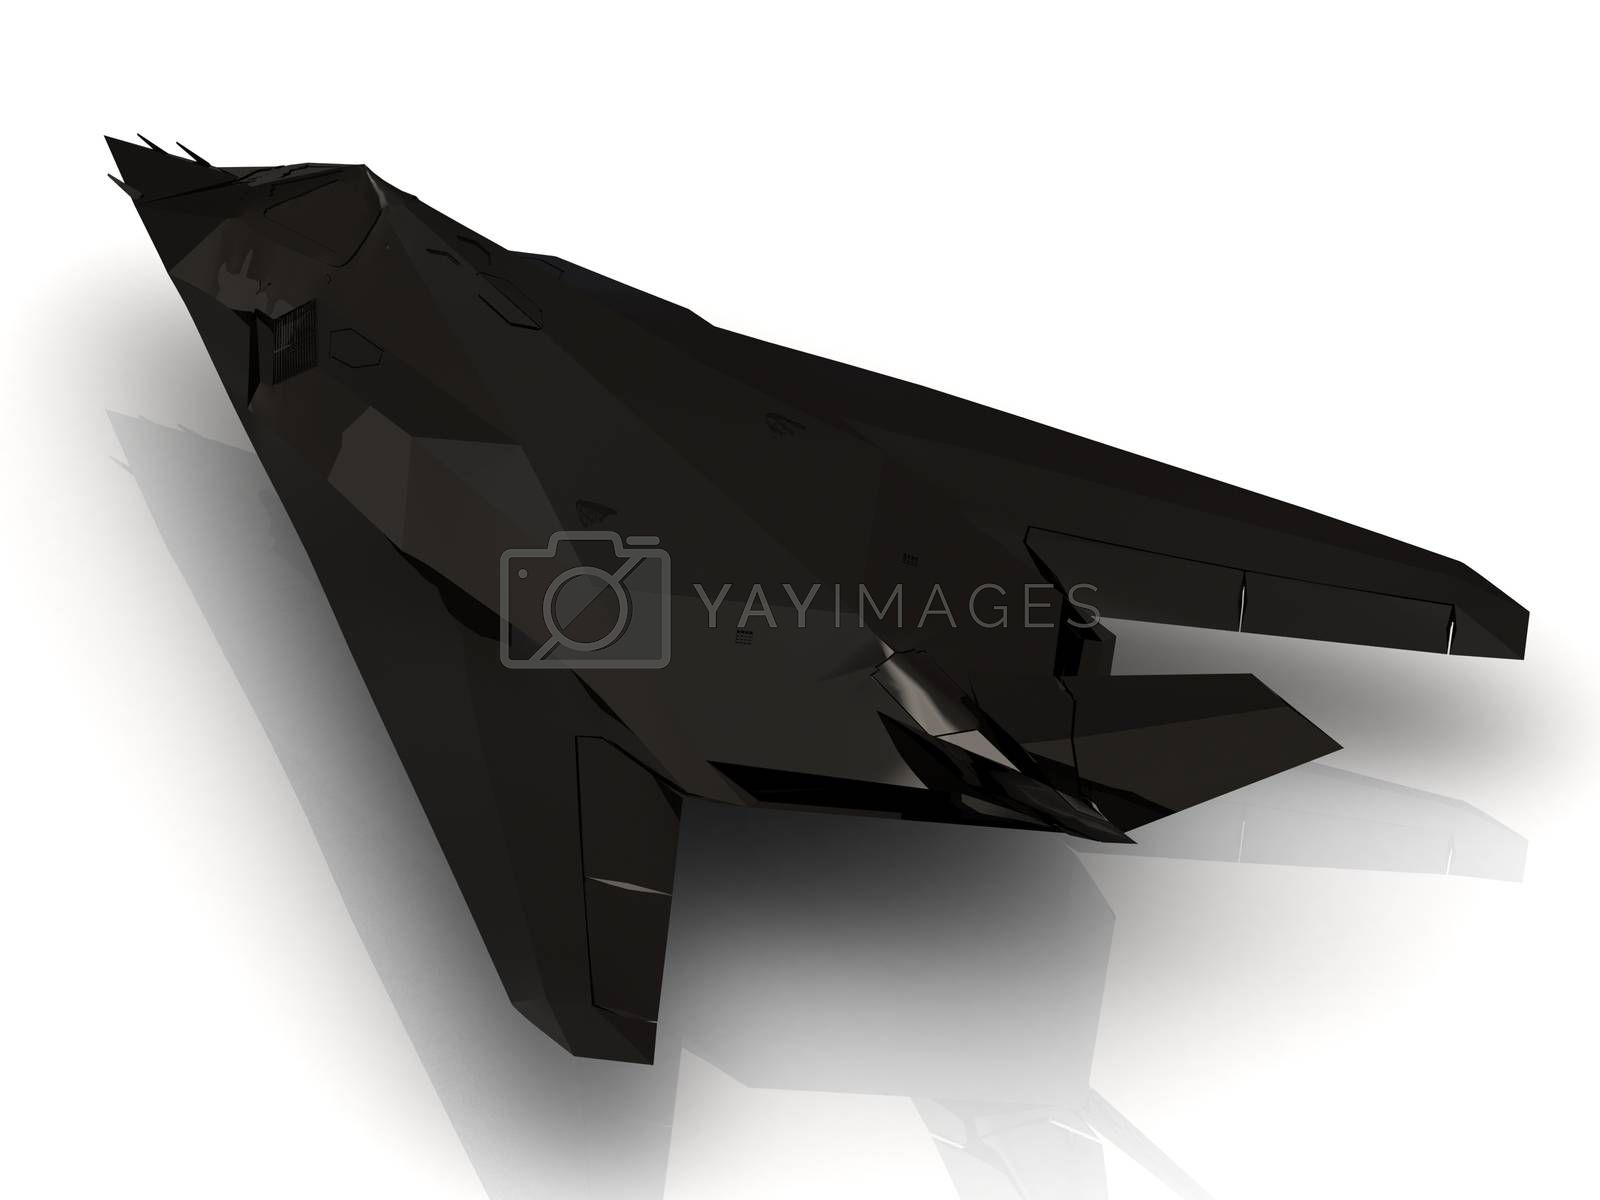 Military jet on the airport runway on white background